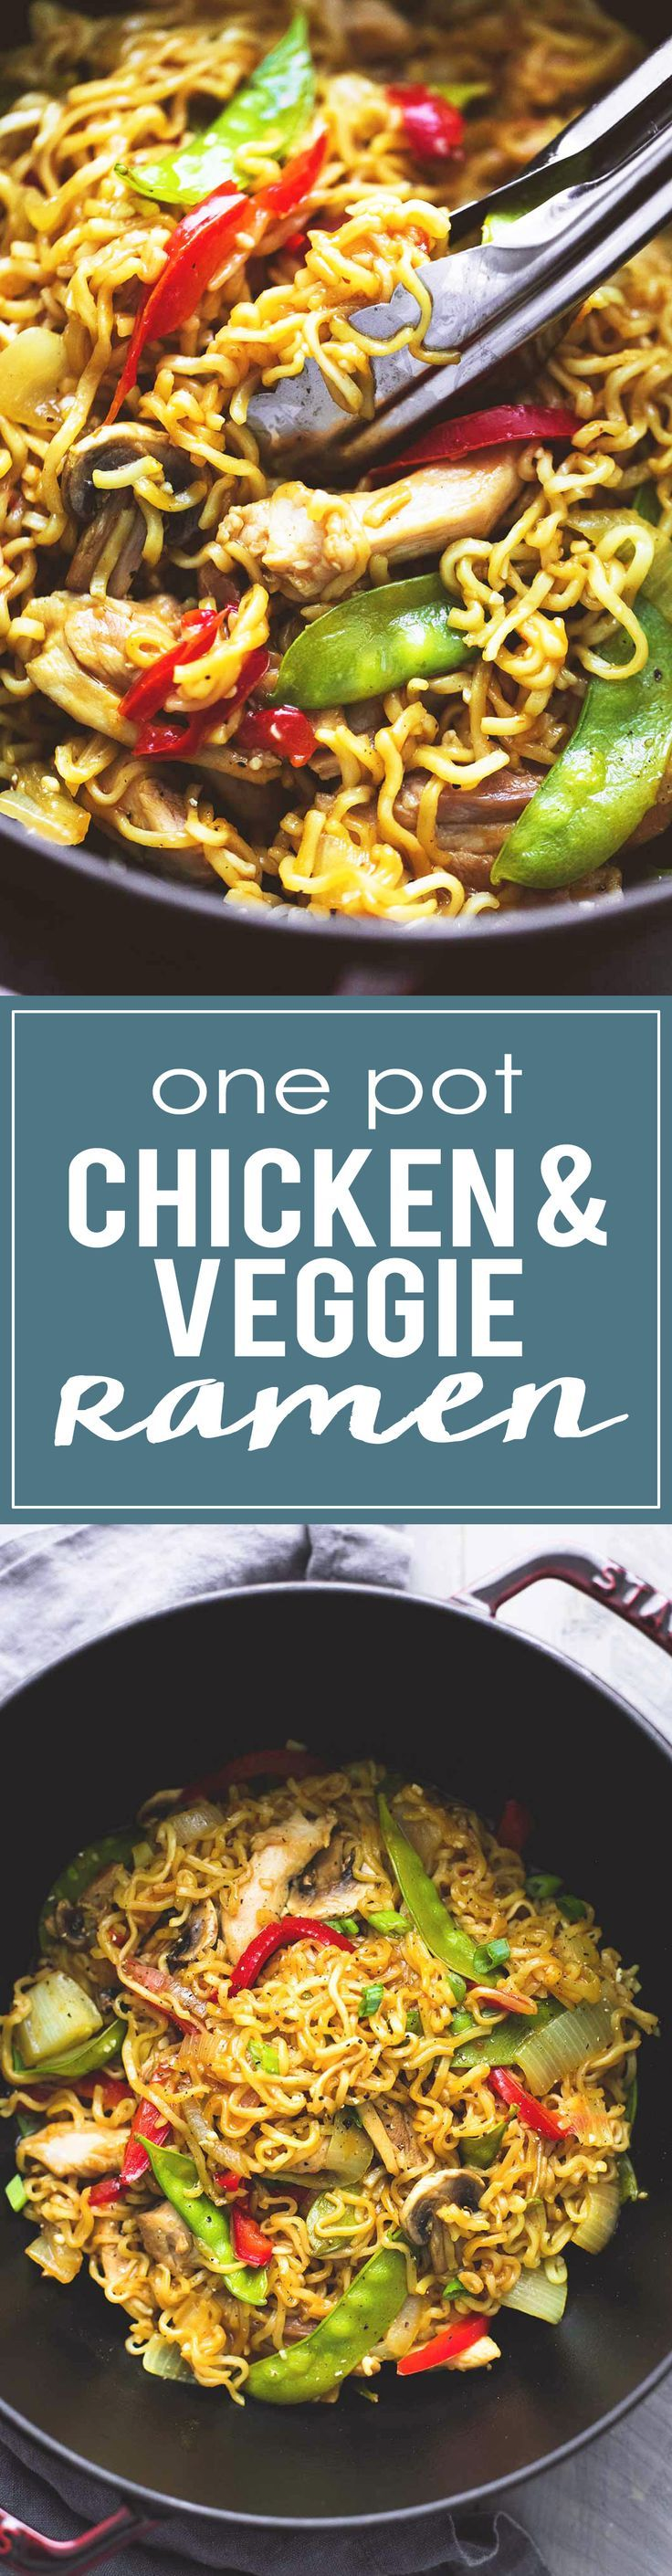 Easy One Pot Chicken & Veggie Ramen is ready in less than 30 minutes and customizable with any of your favorite veggies.